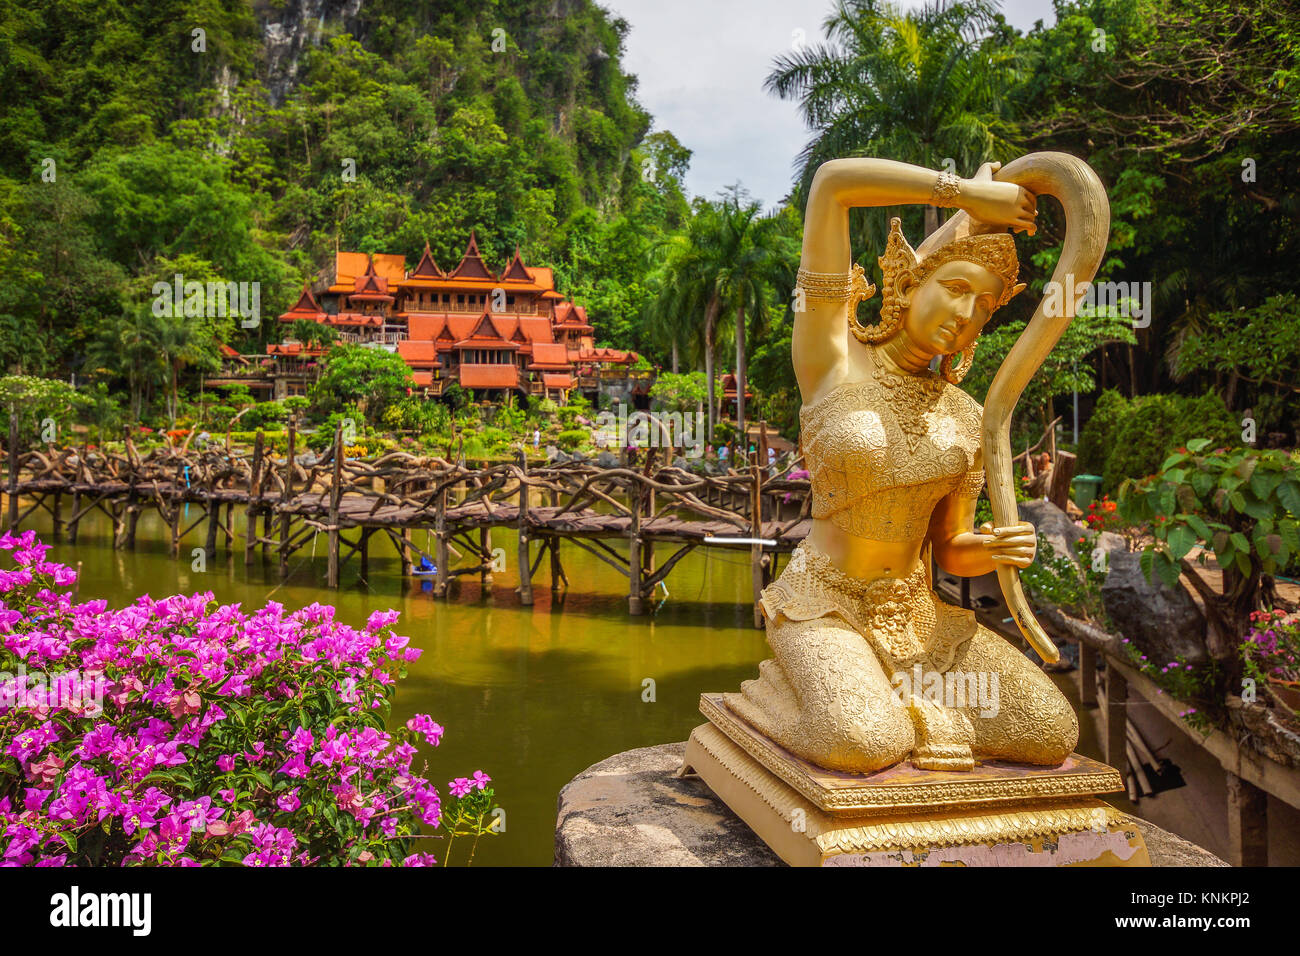 Thai literature Goddess of the earth statue twisting her hair in front of Thailand rural Buddhist temple. - Stock Image